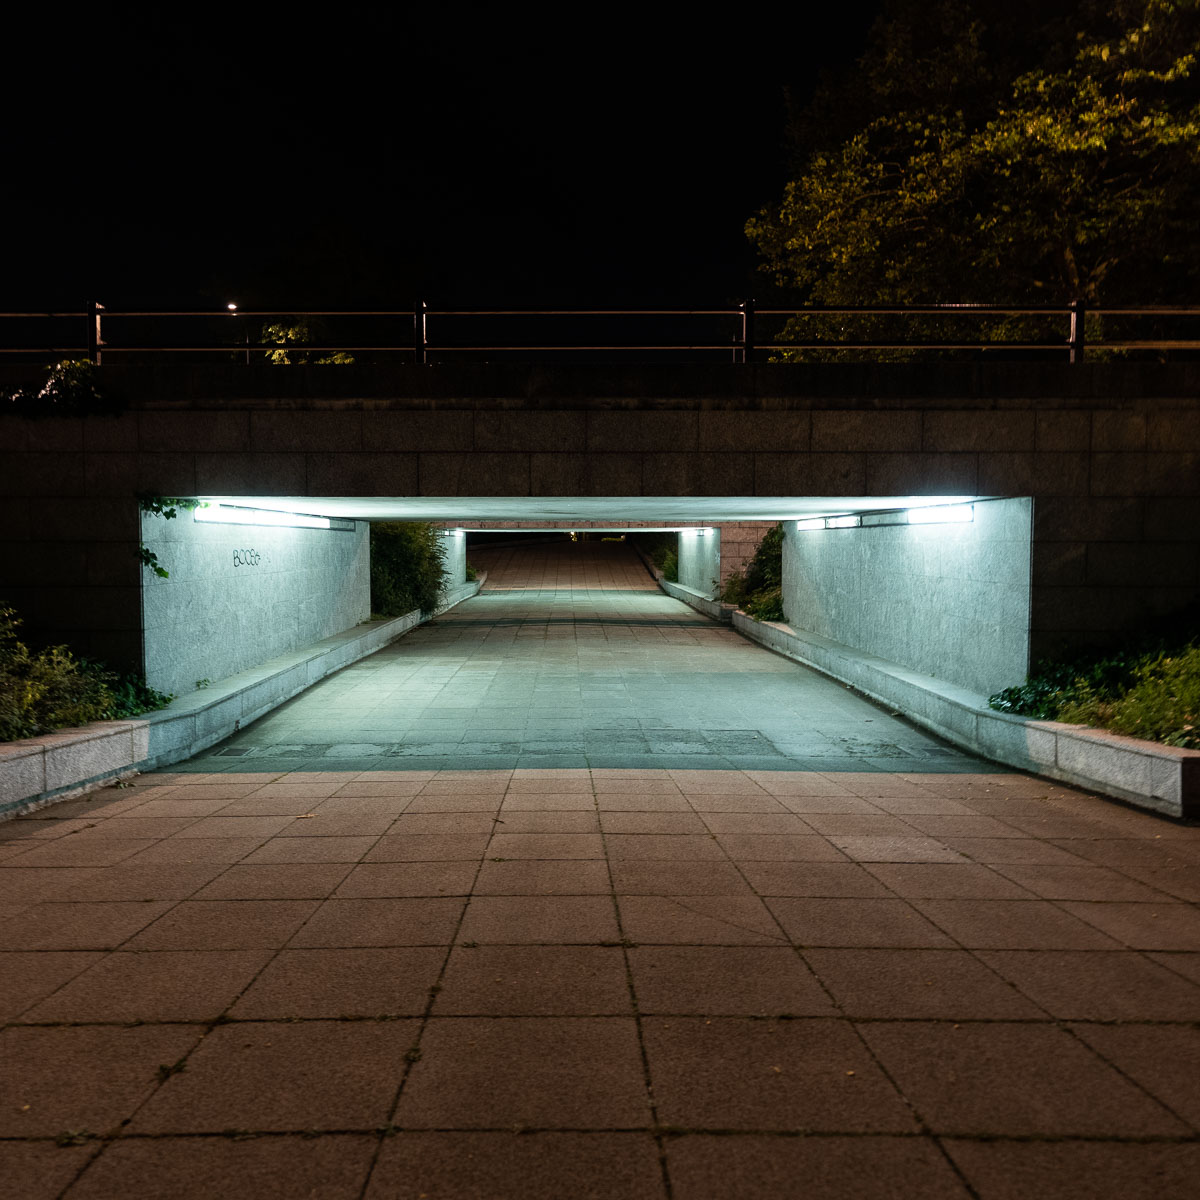 Entrance of a grimy Milton Keynes underpass